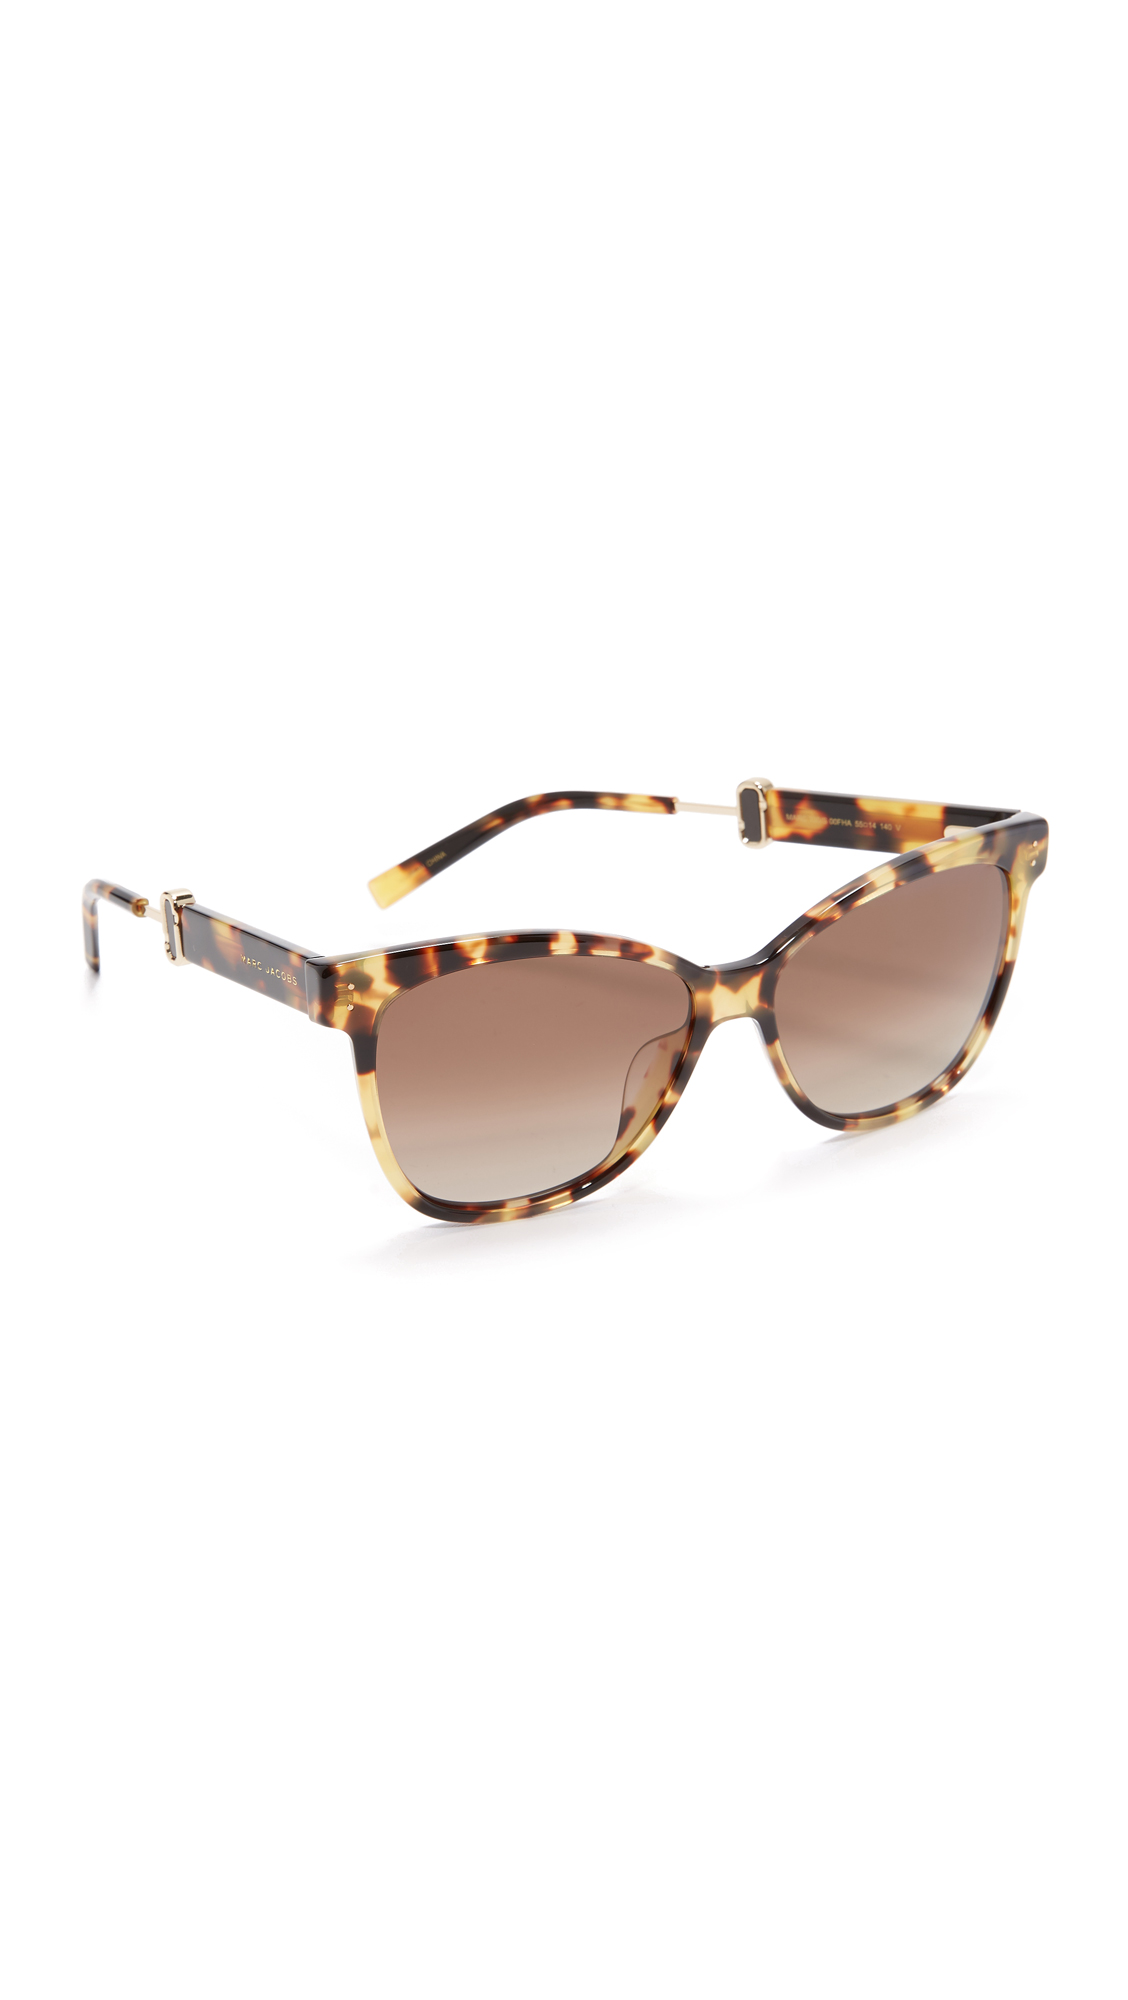 marc jacobs female 211469 marc jacobs classic sunglasses spotted havanabrown